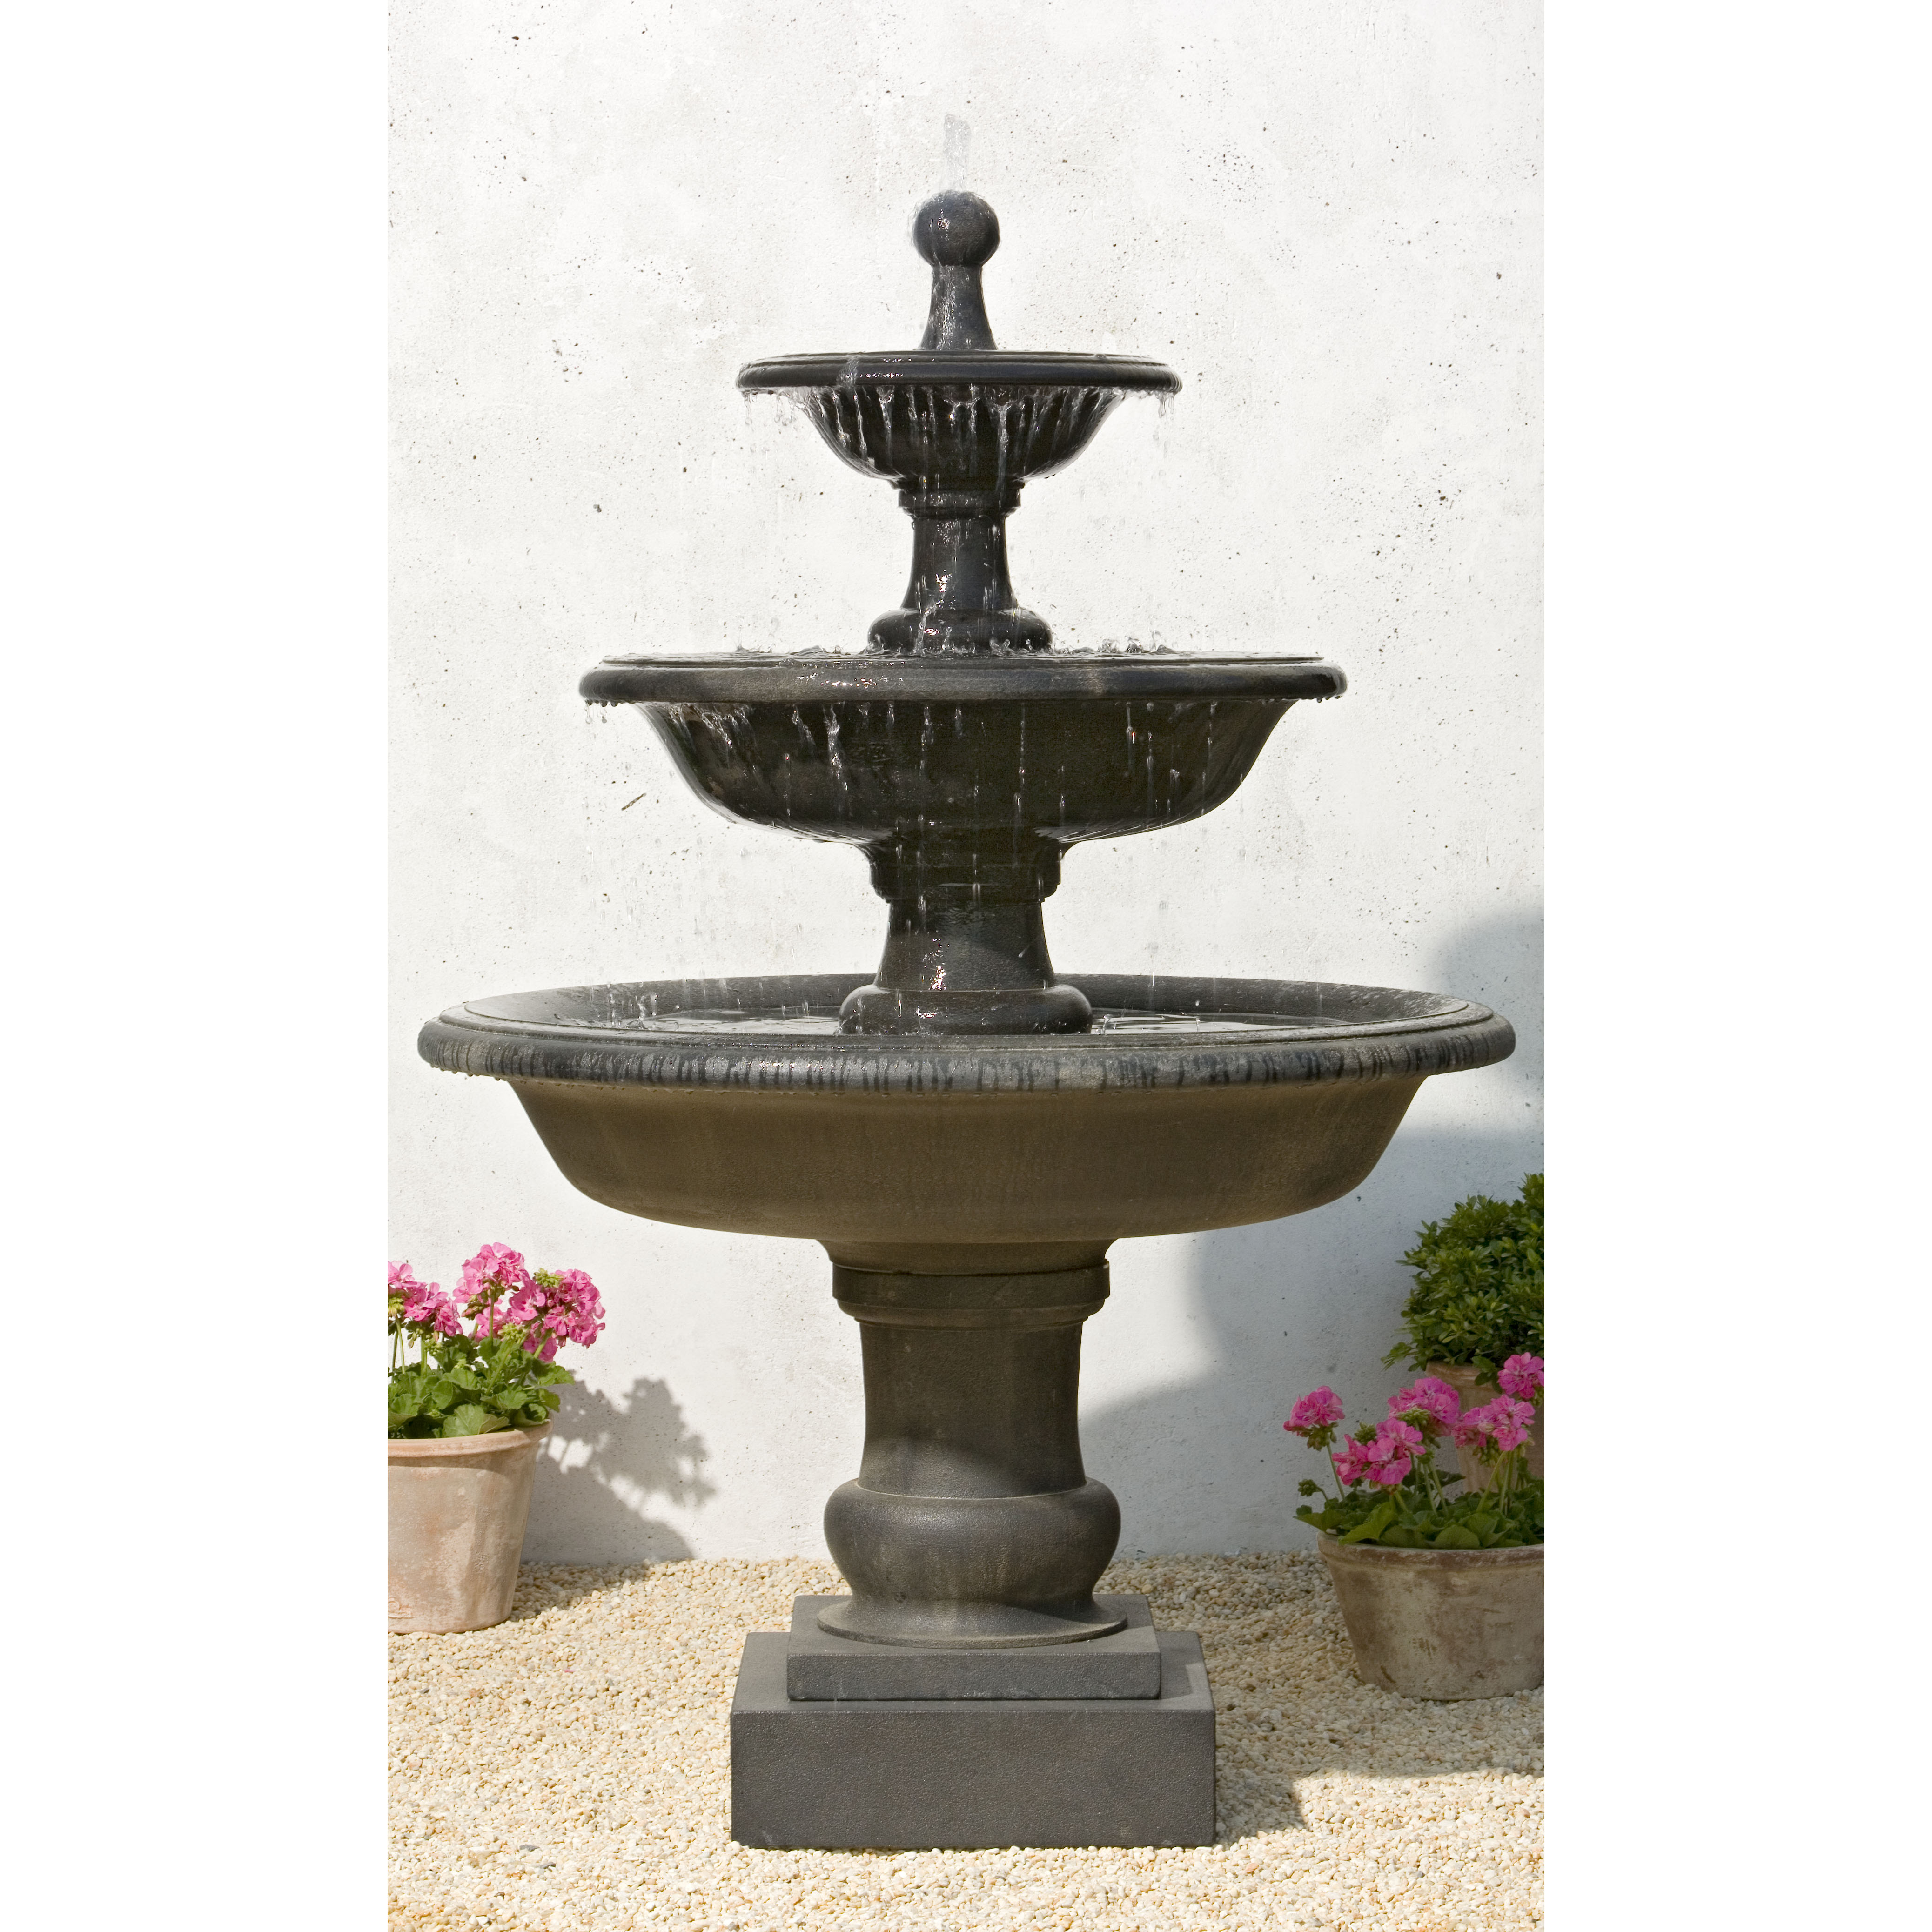 Campania - Vicobello Fountain